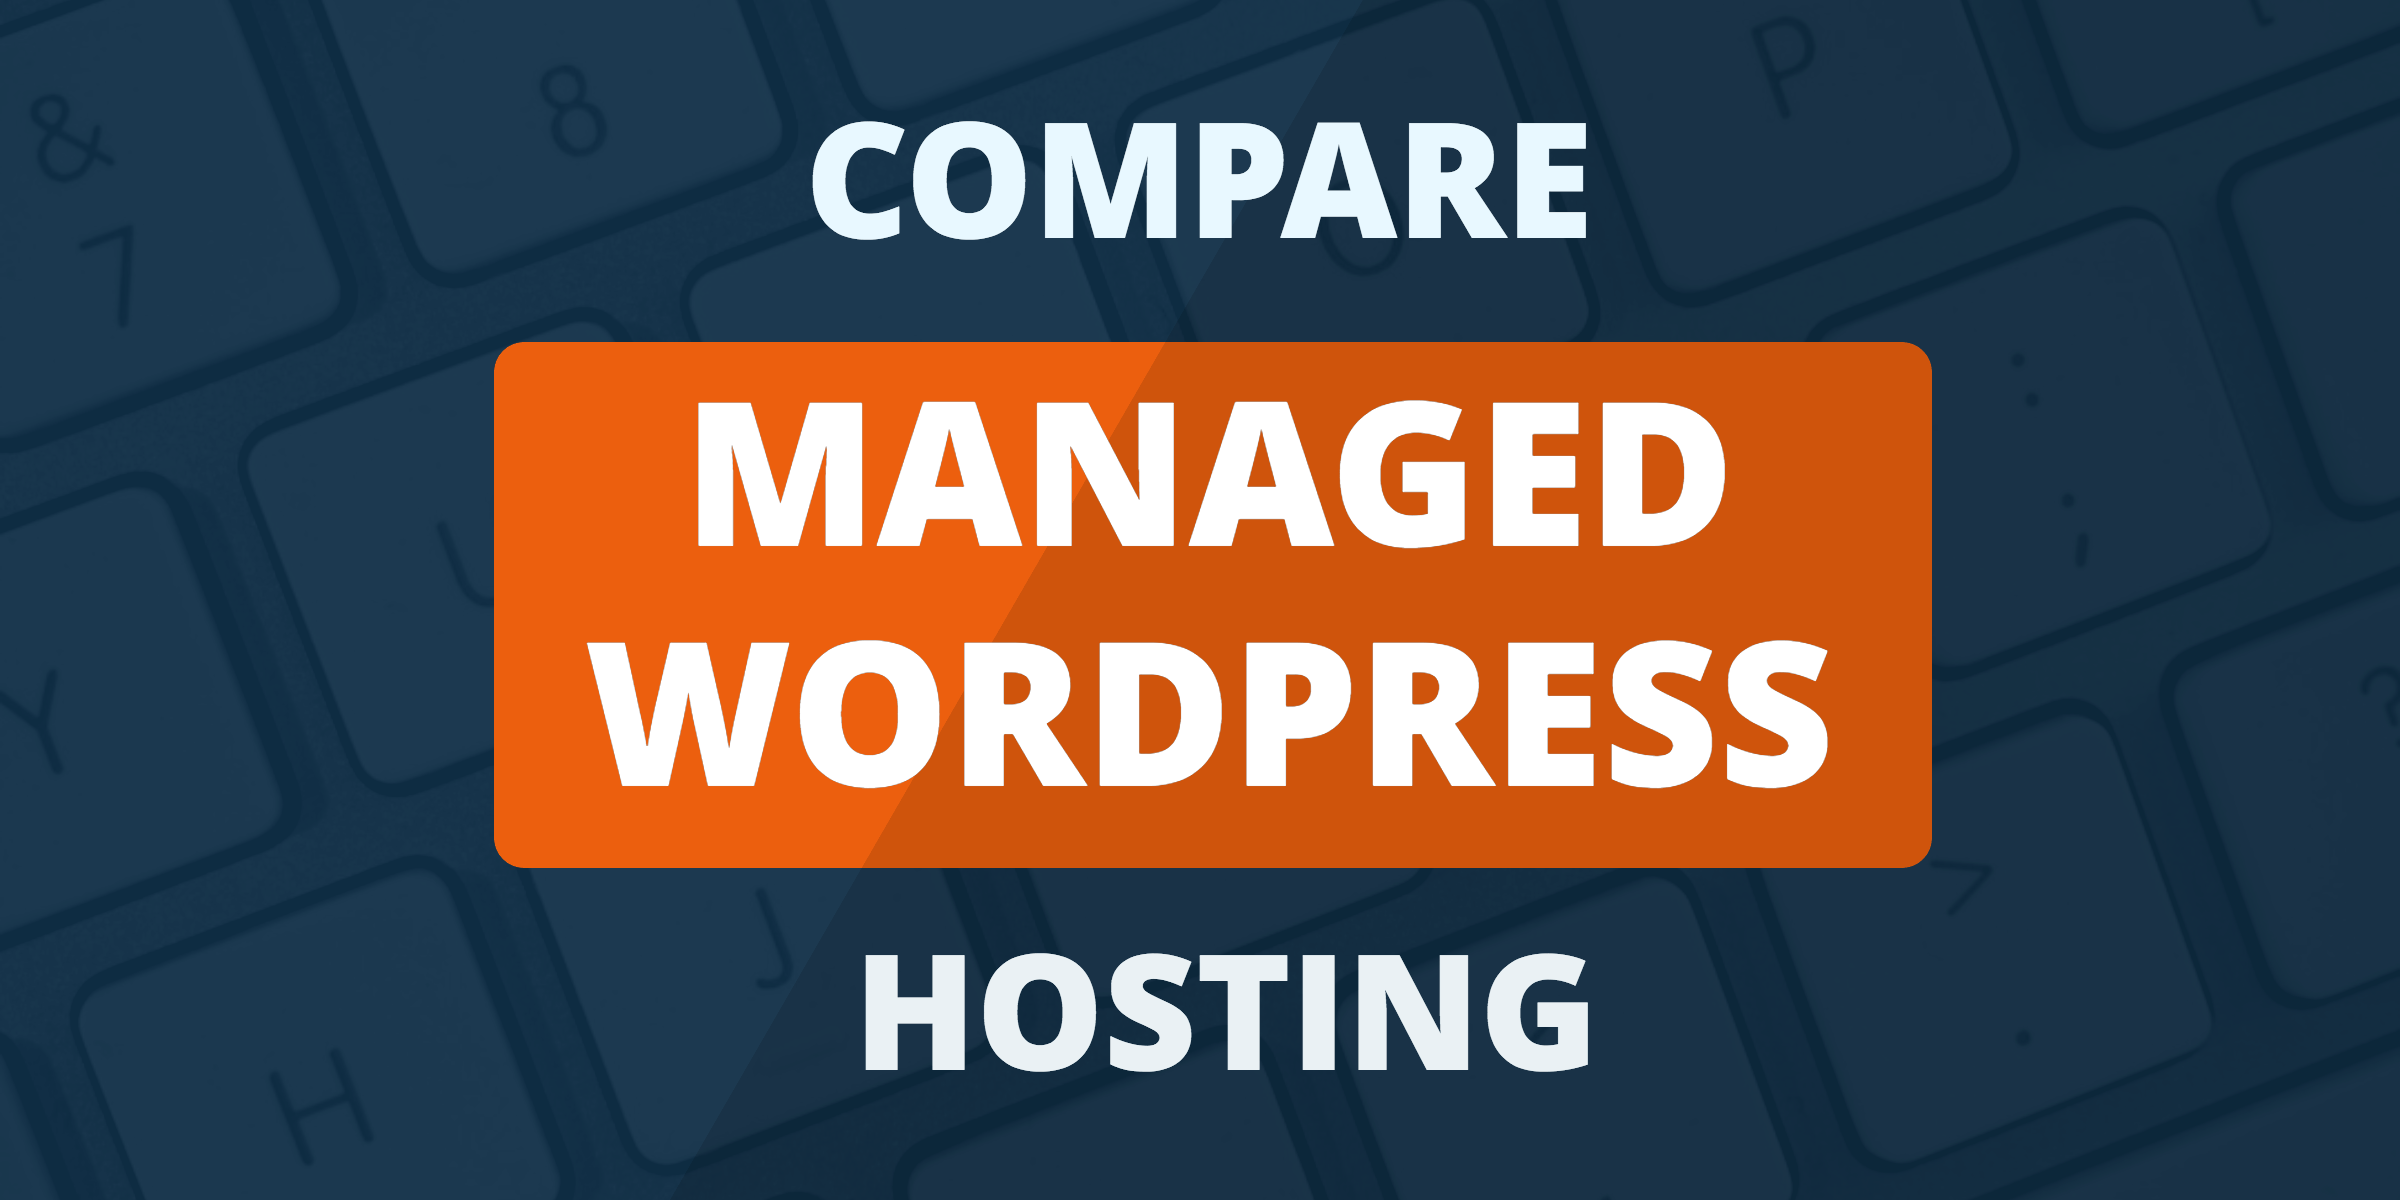 compare managed wordpress hosting